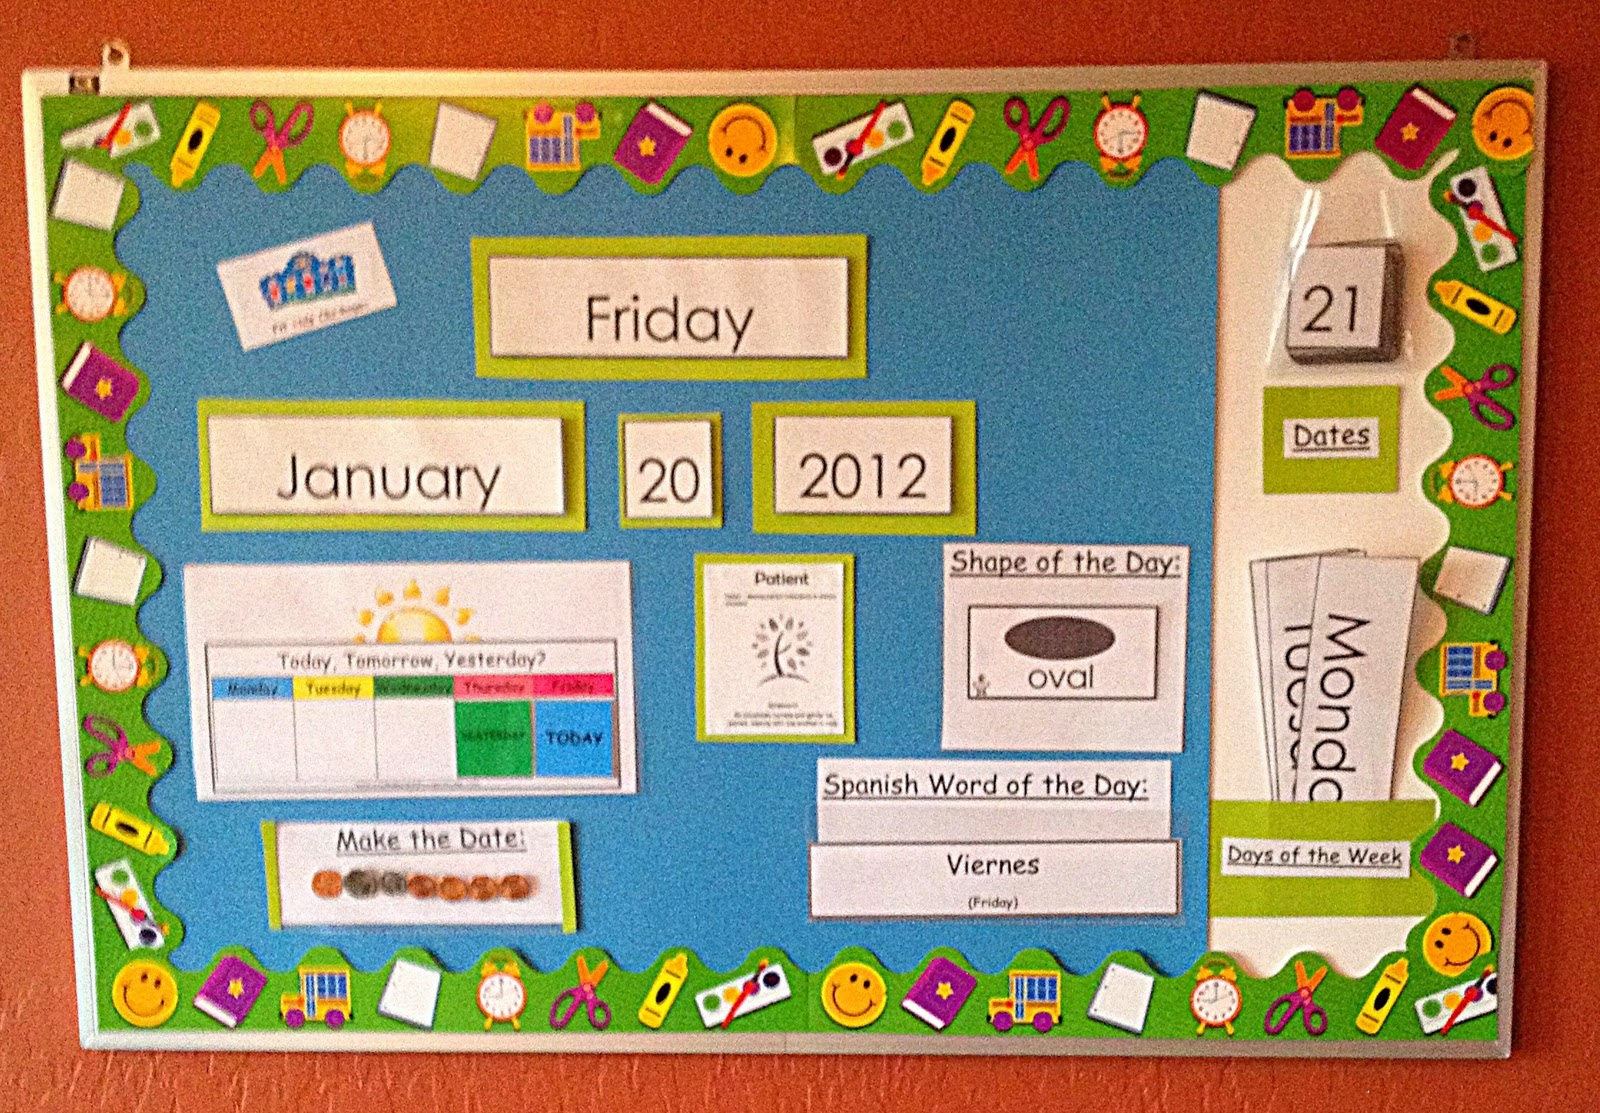 Kindergarten Calendar Time S : Fit kids clubhouse calendar yesterday or tomorrow